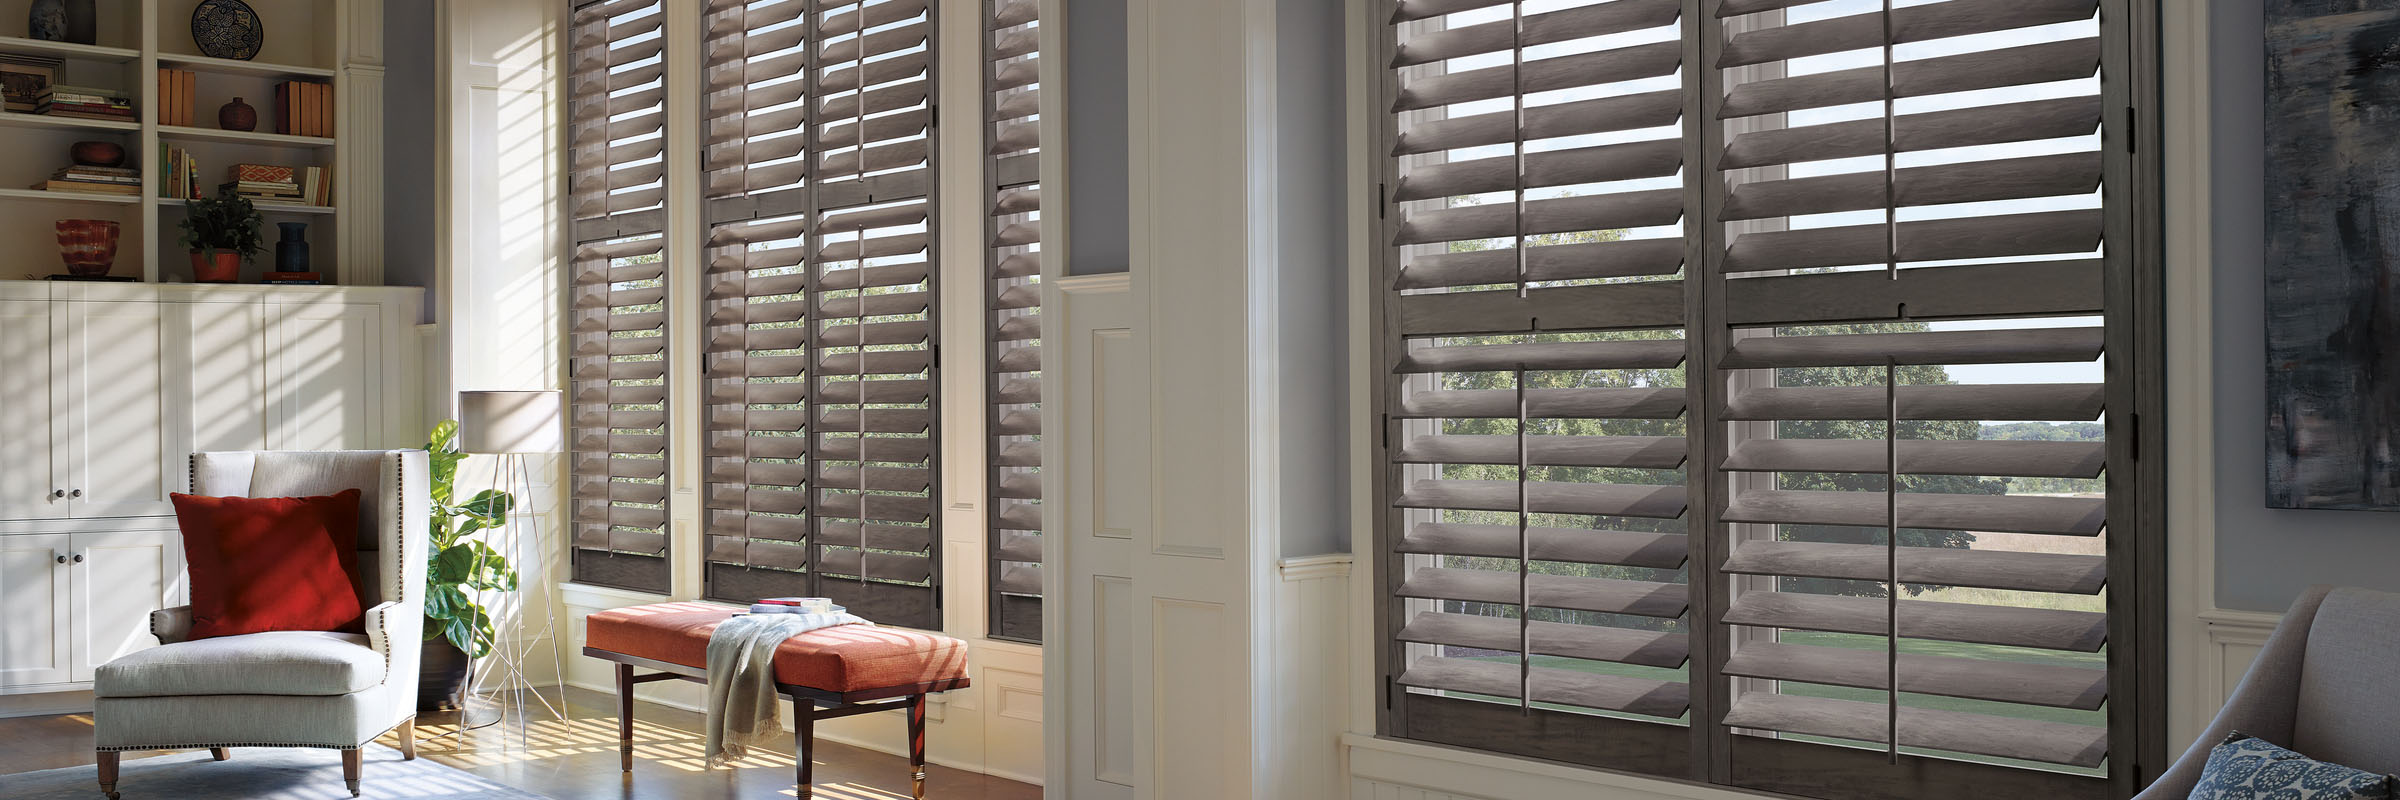 be disadvantages shades blinds equipped sliding shutters advantages california plantation and materials door